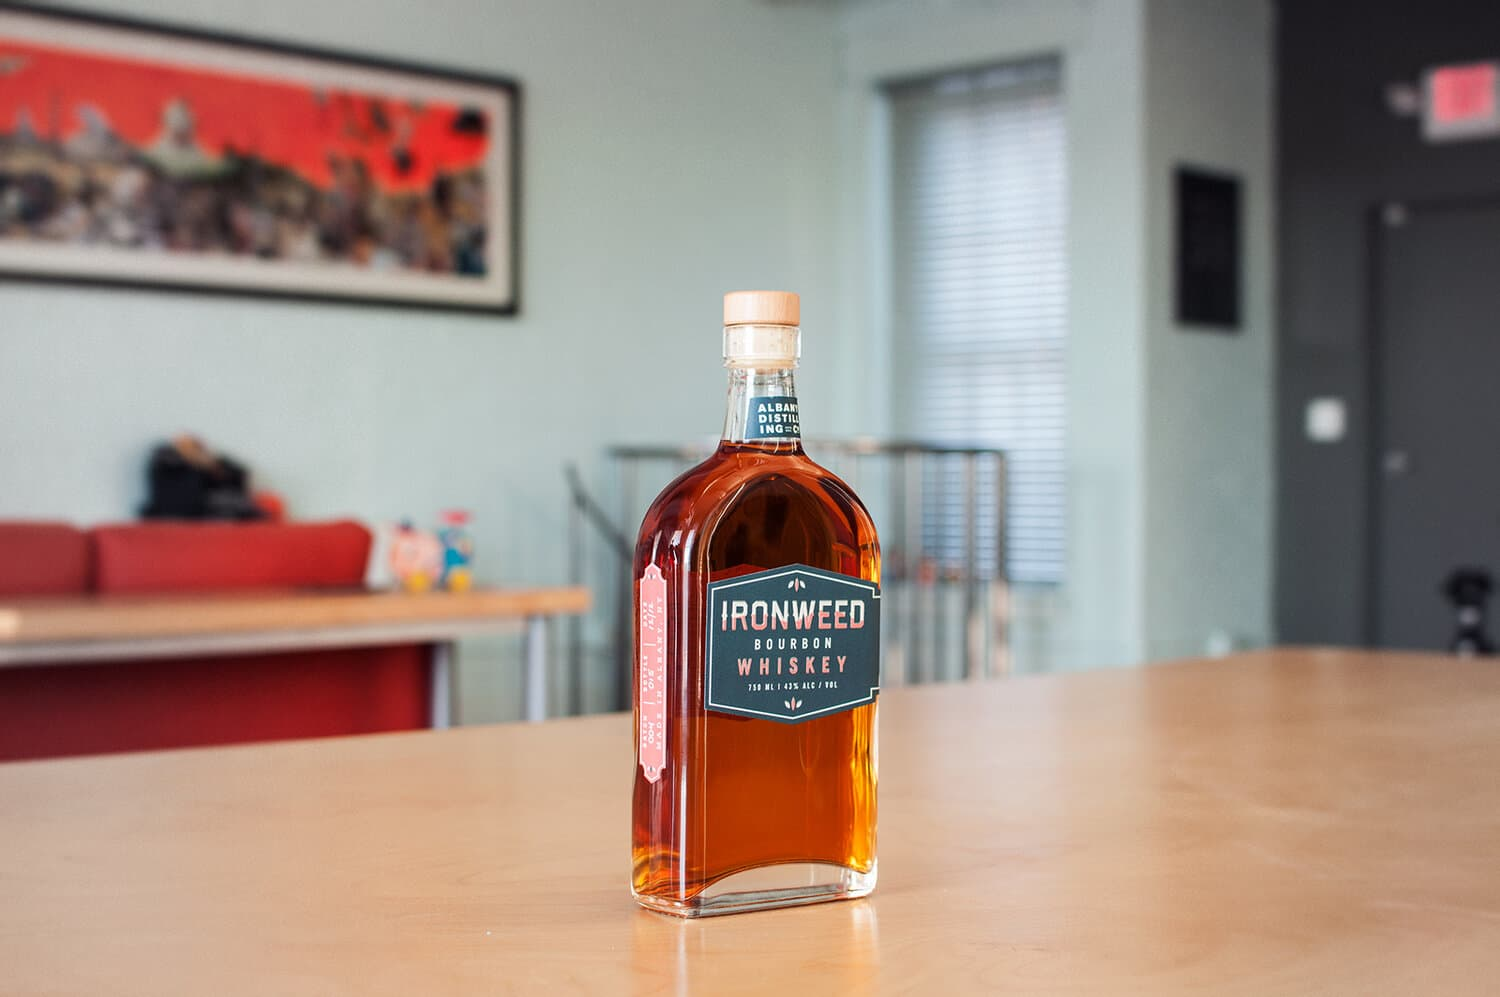 Albany Distilling Company - Ironweed Whiskey Packaging